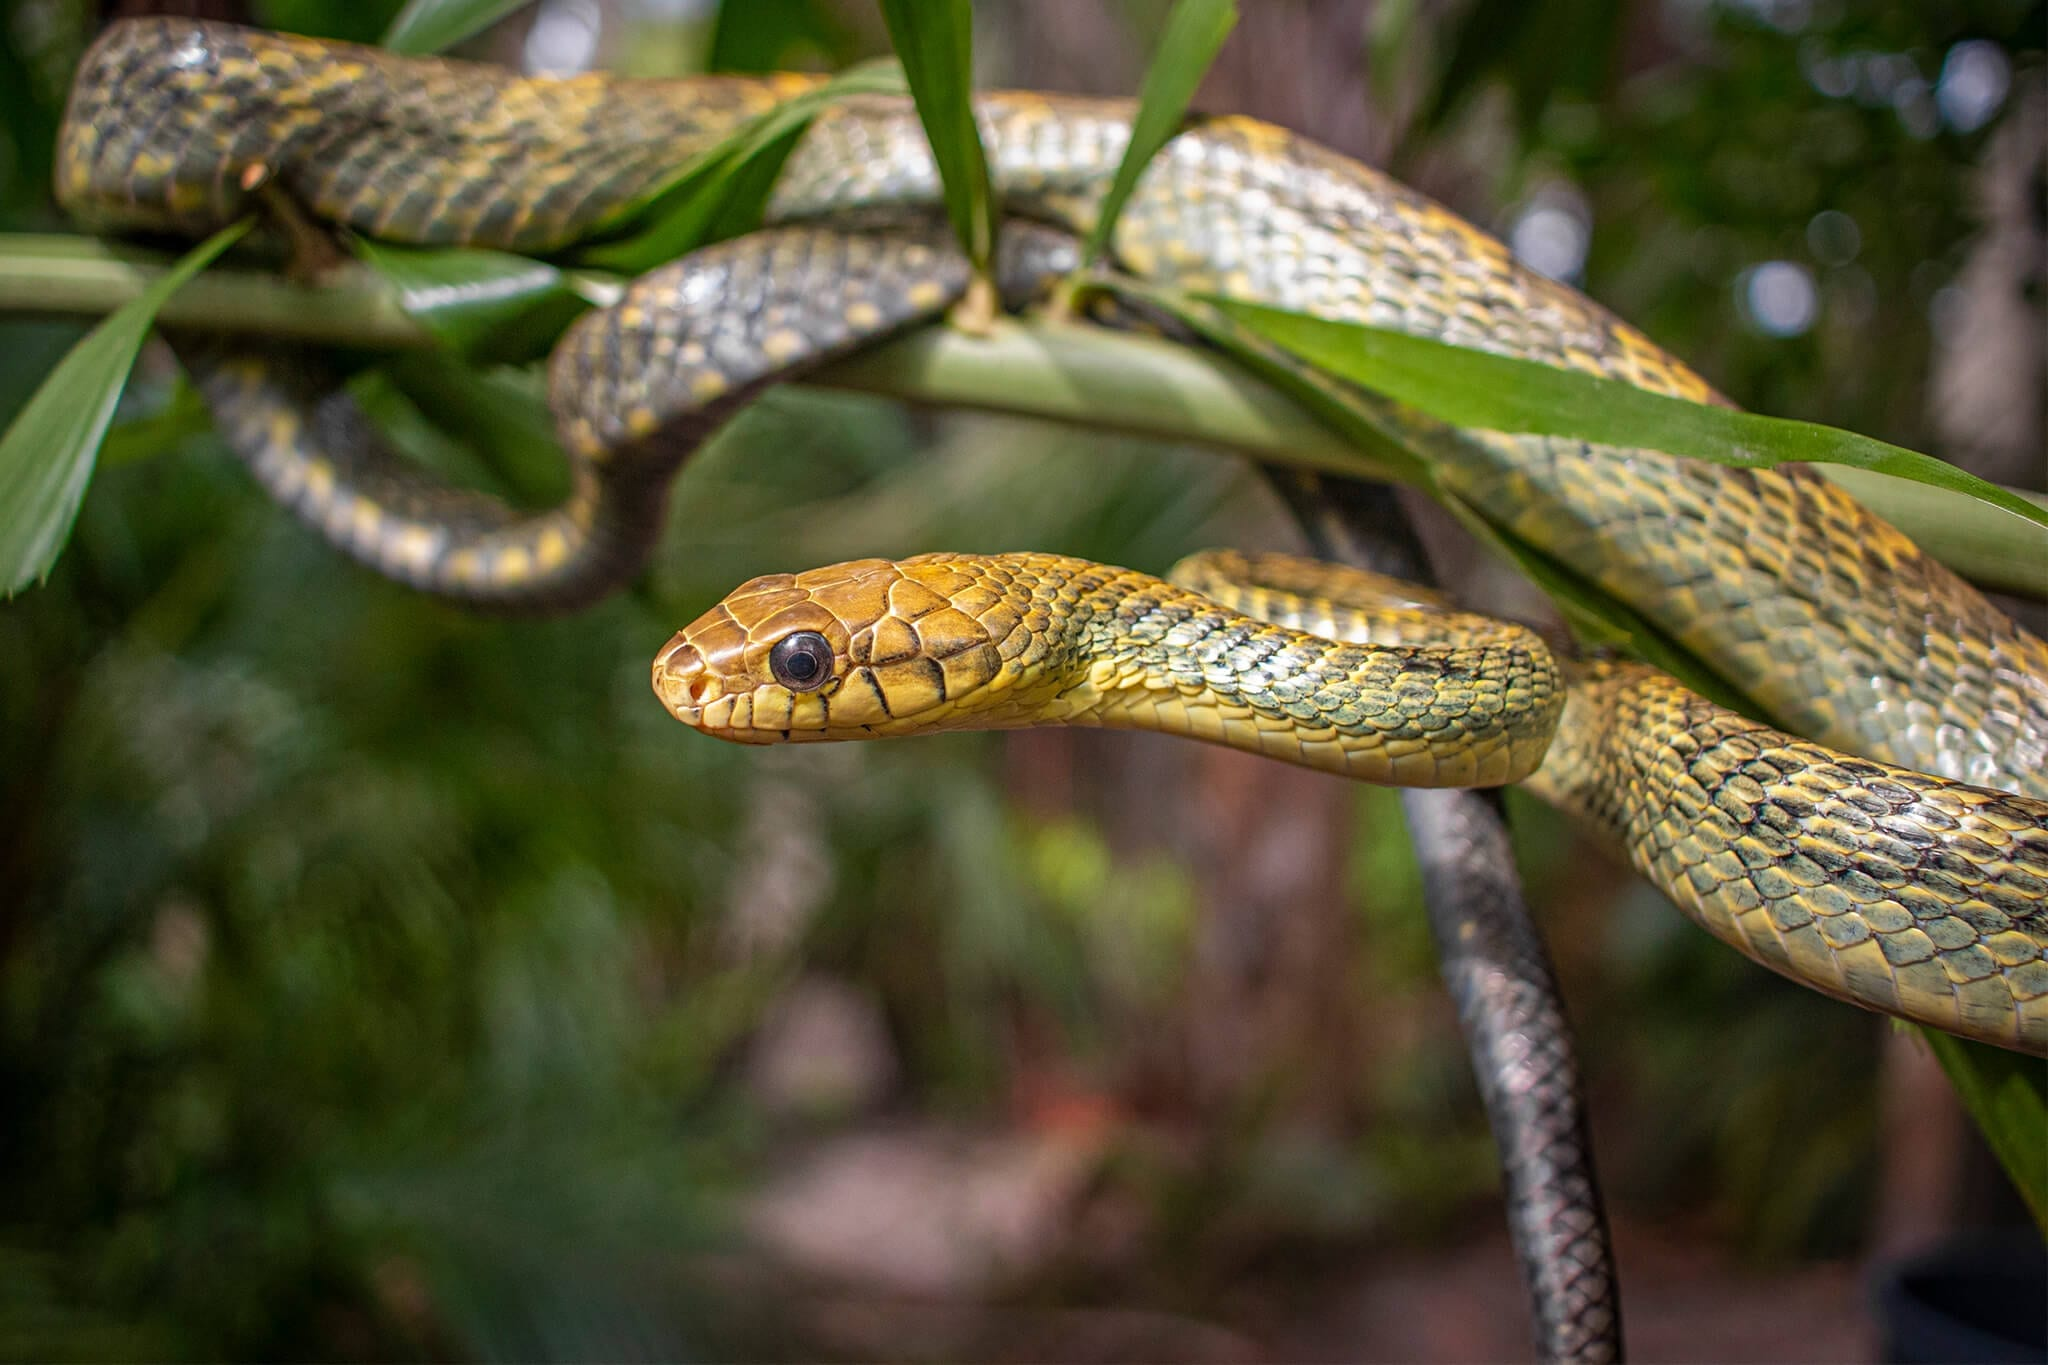 Yellow-bellied puffing snake in tree